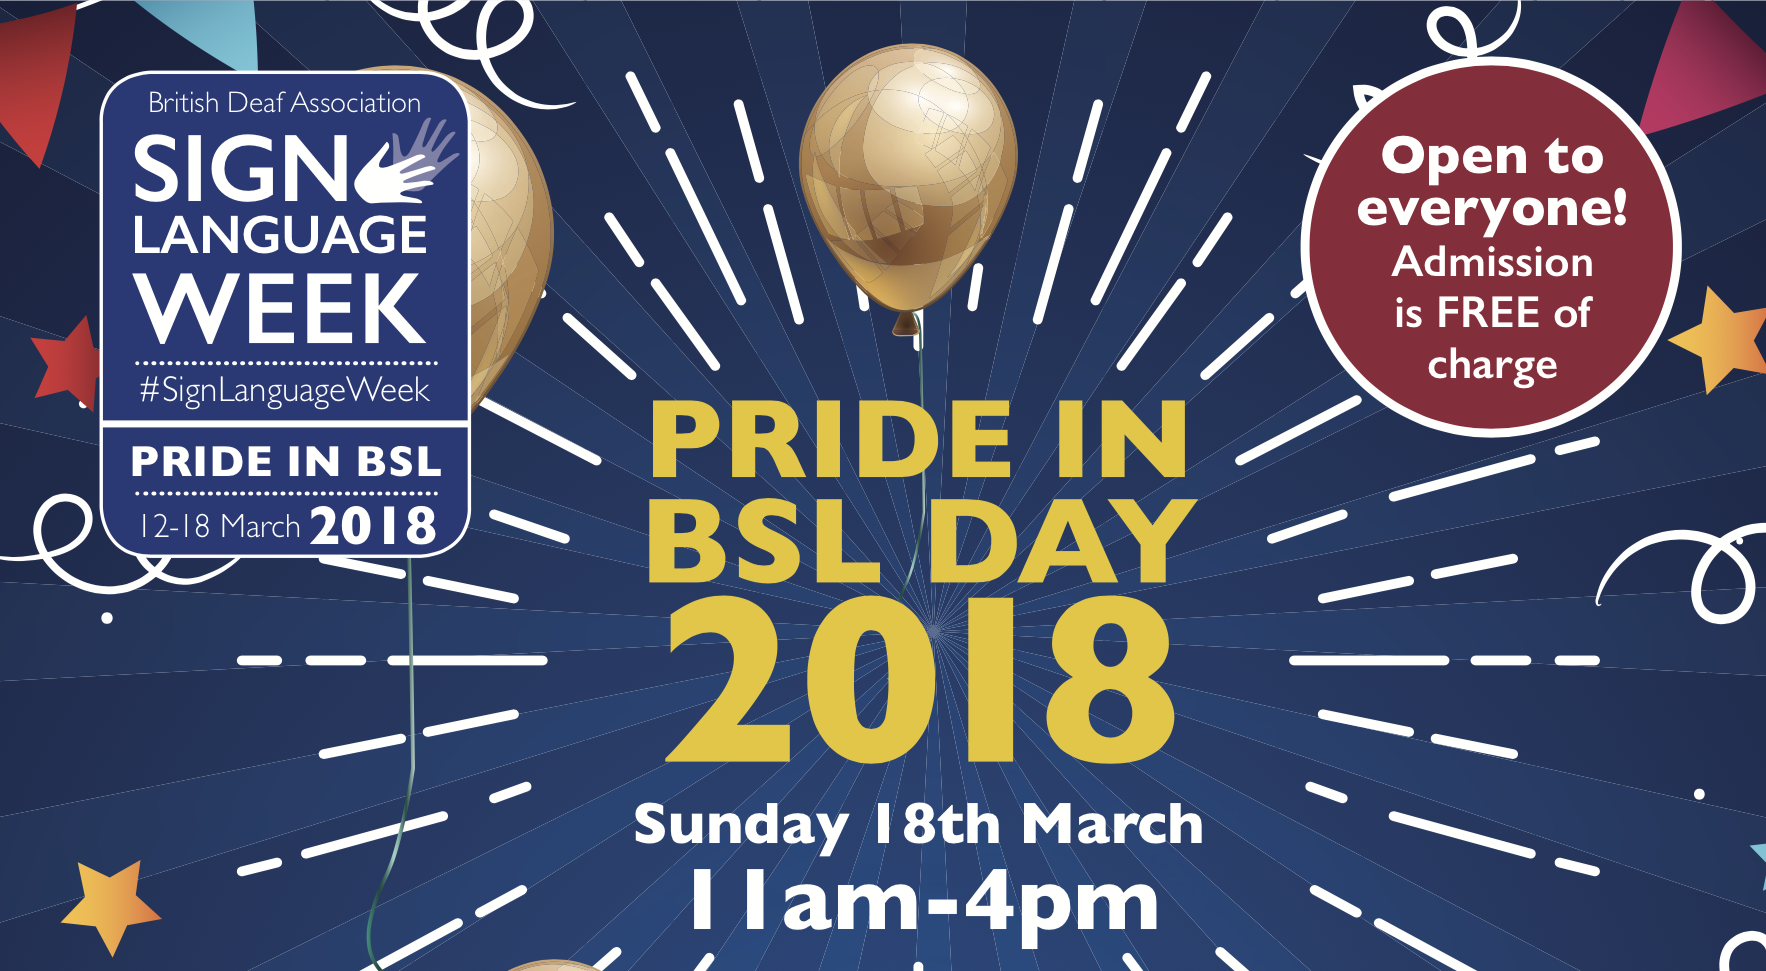 BDA-Pride-in-BSL-Day-2018-ver2